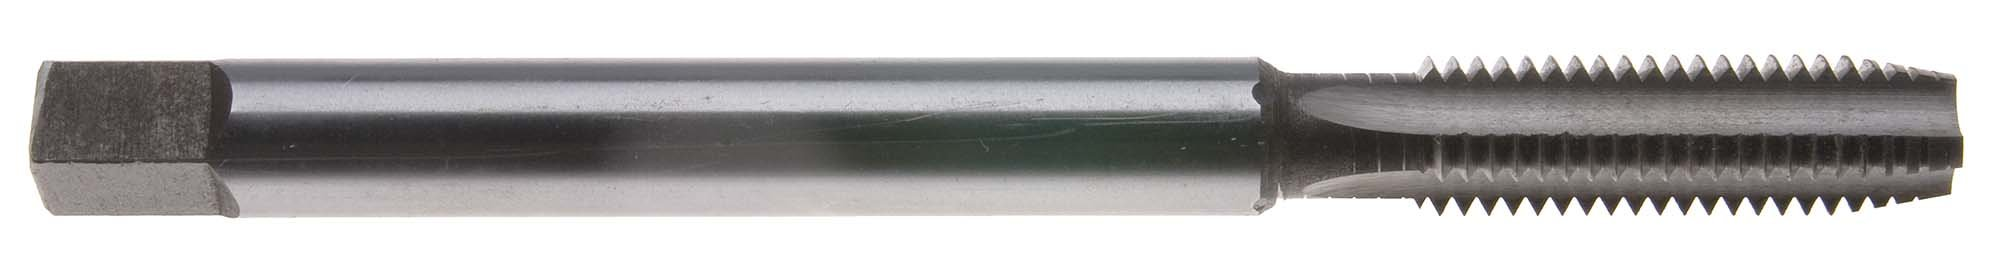 5/8-11 x 12'' Long Plug Style Pulley Tap, High Speed Steel by Taps - Long